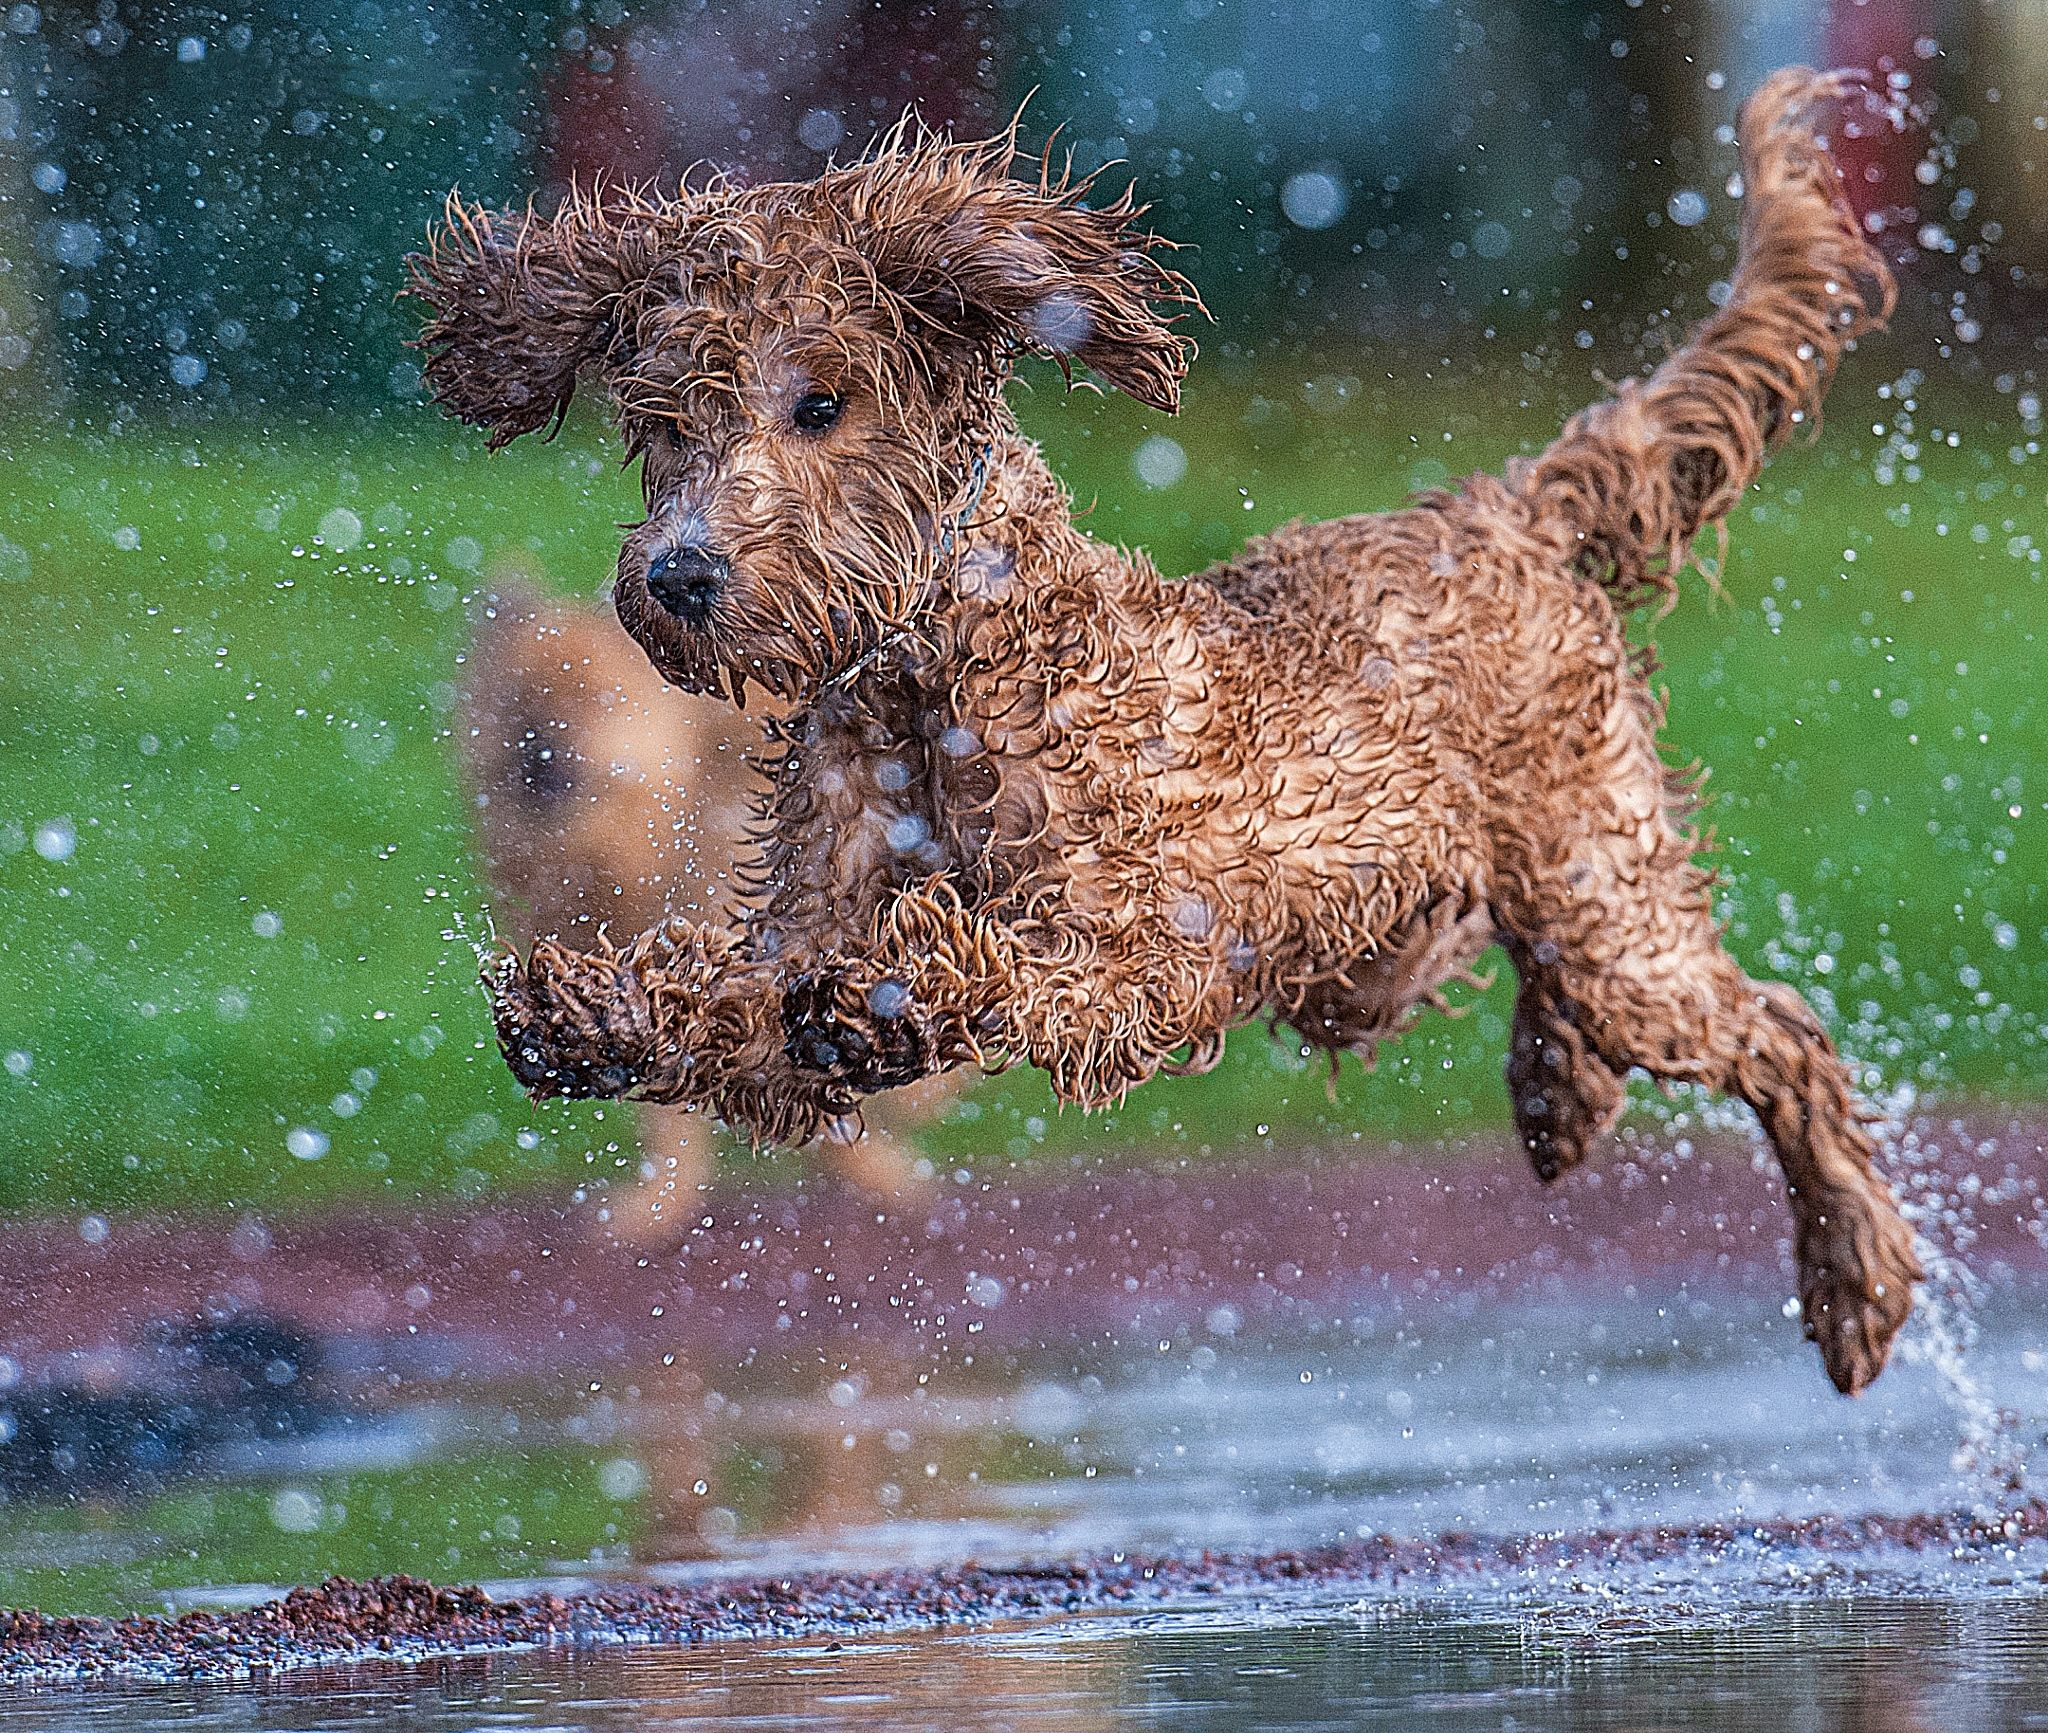 Splash A Wet Rainy Day Out With The Dogs A Labradoodle Is A